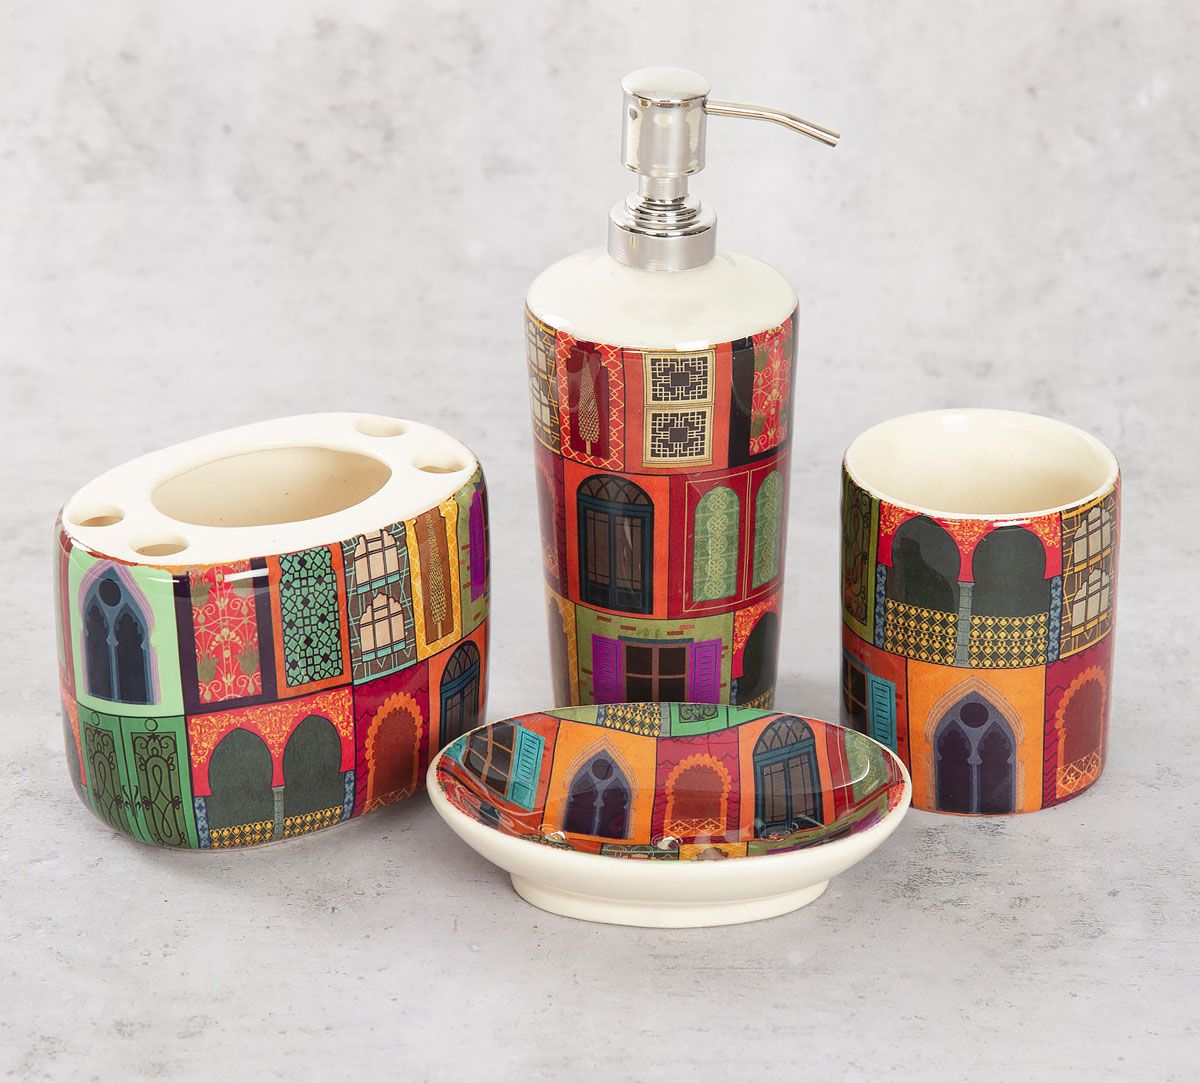 India Circus Mughal Doors Reiteration Bath Accessory Set